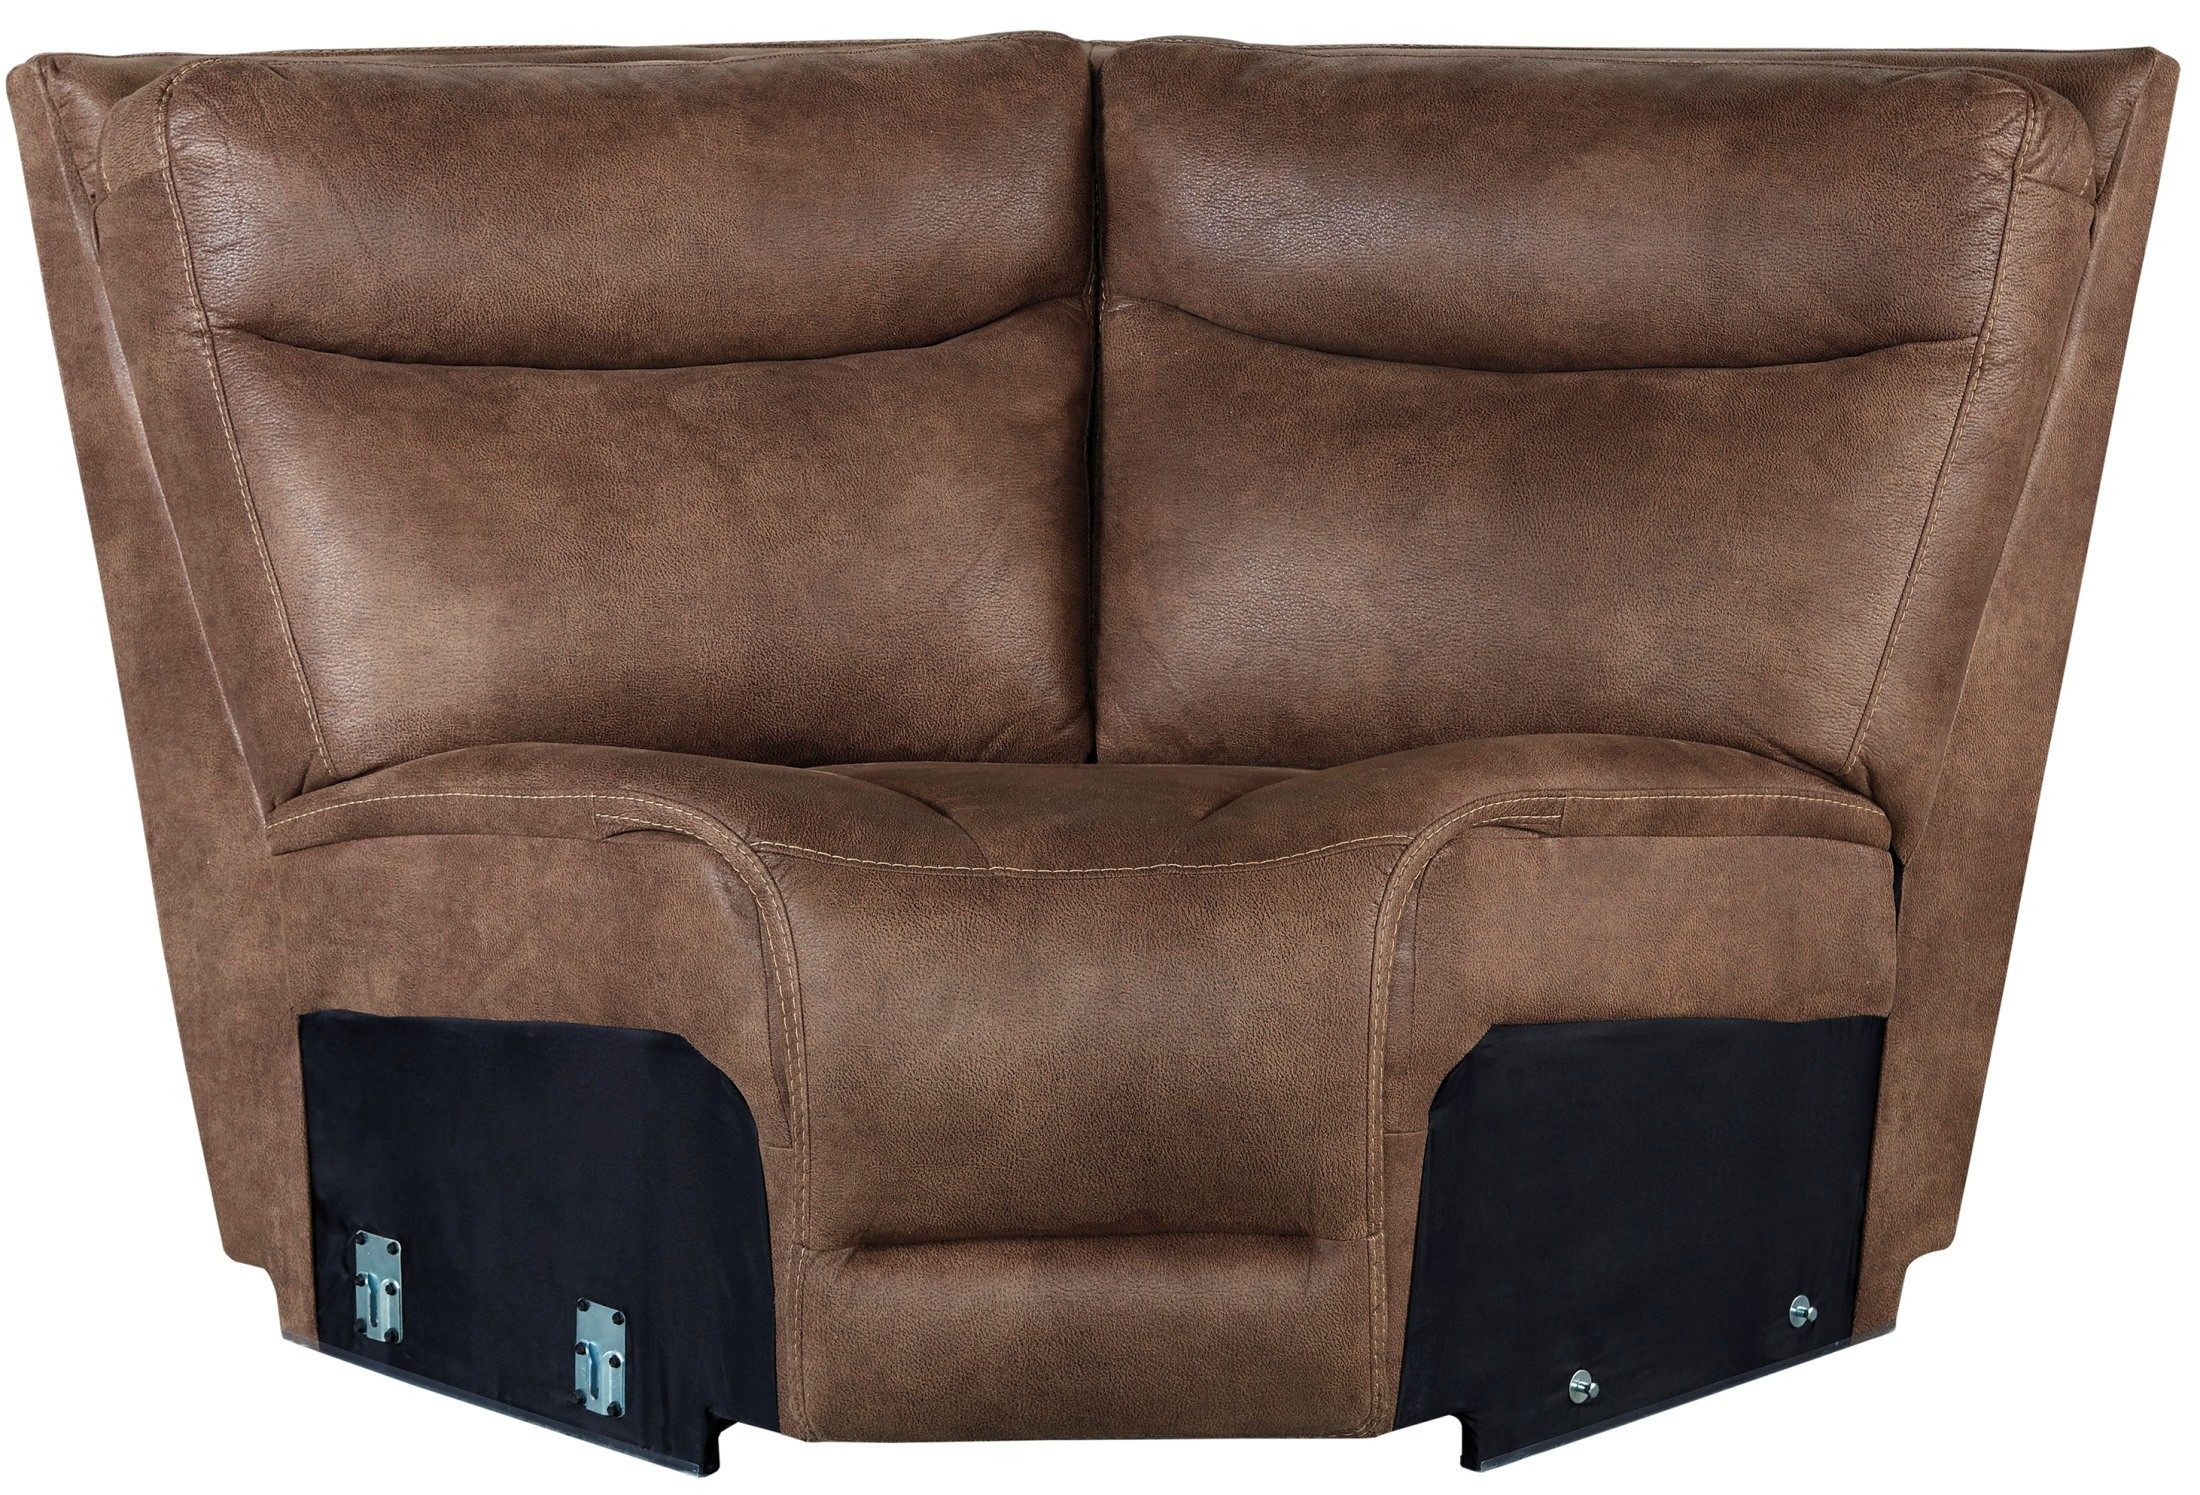 Valto saddle storage reclining sectional from ashley for Affordable furniture 3 piece sectional in wyoming saddle